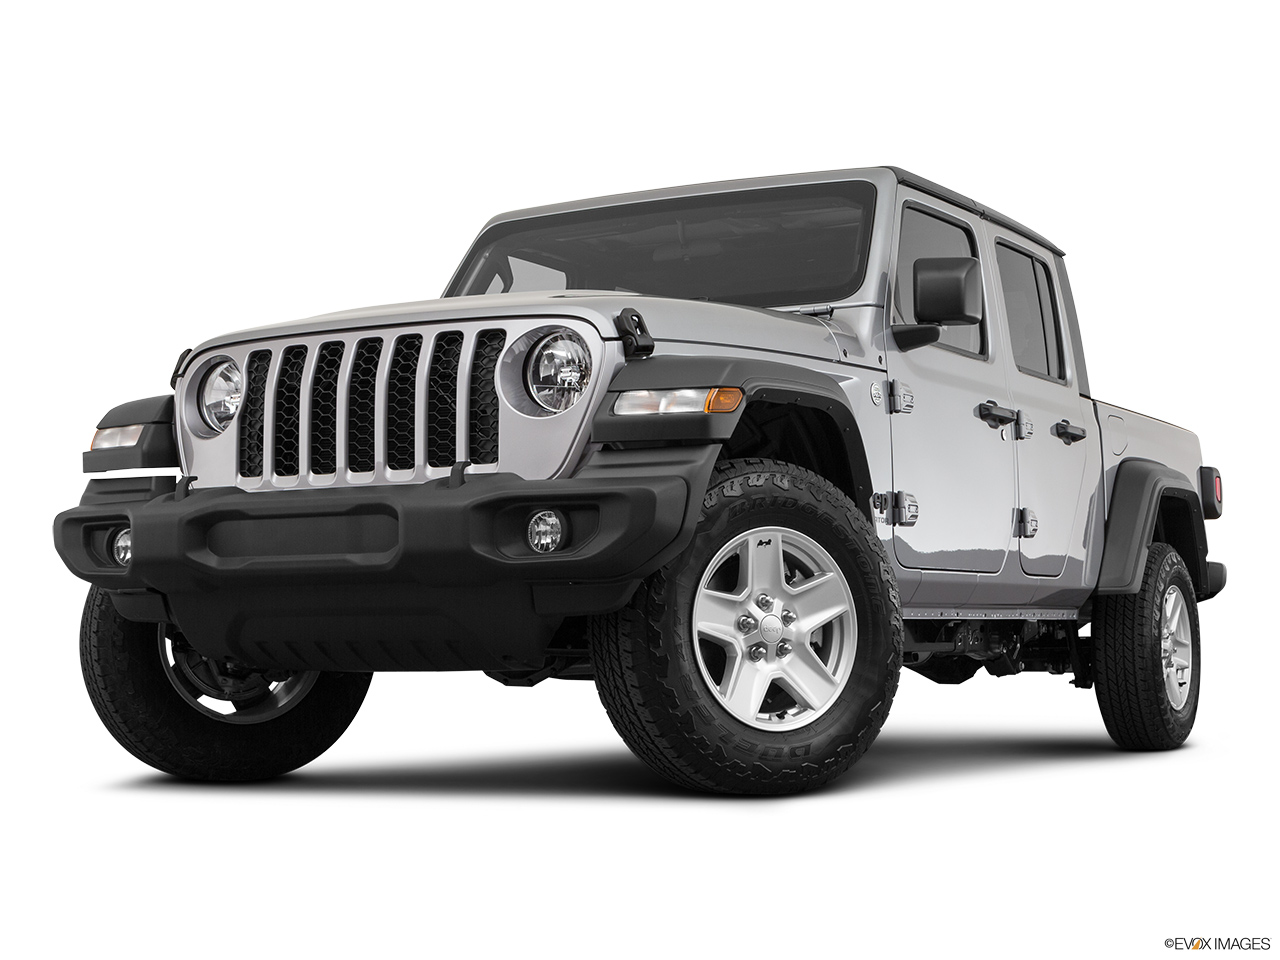 2020 Jeep Gladiator Sport S Front angle view, low wide perspective.